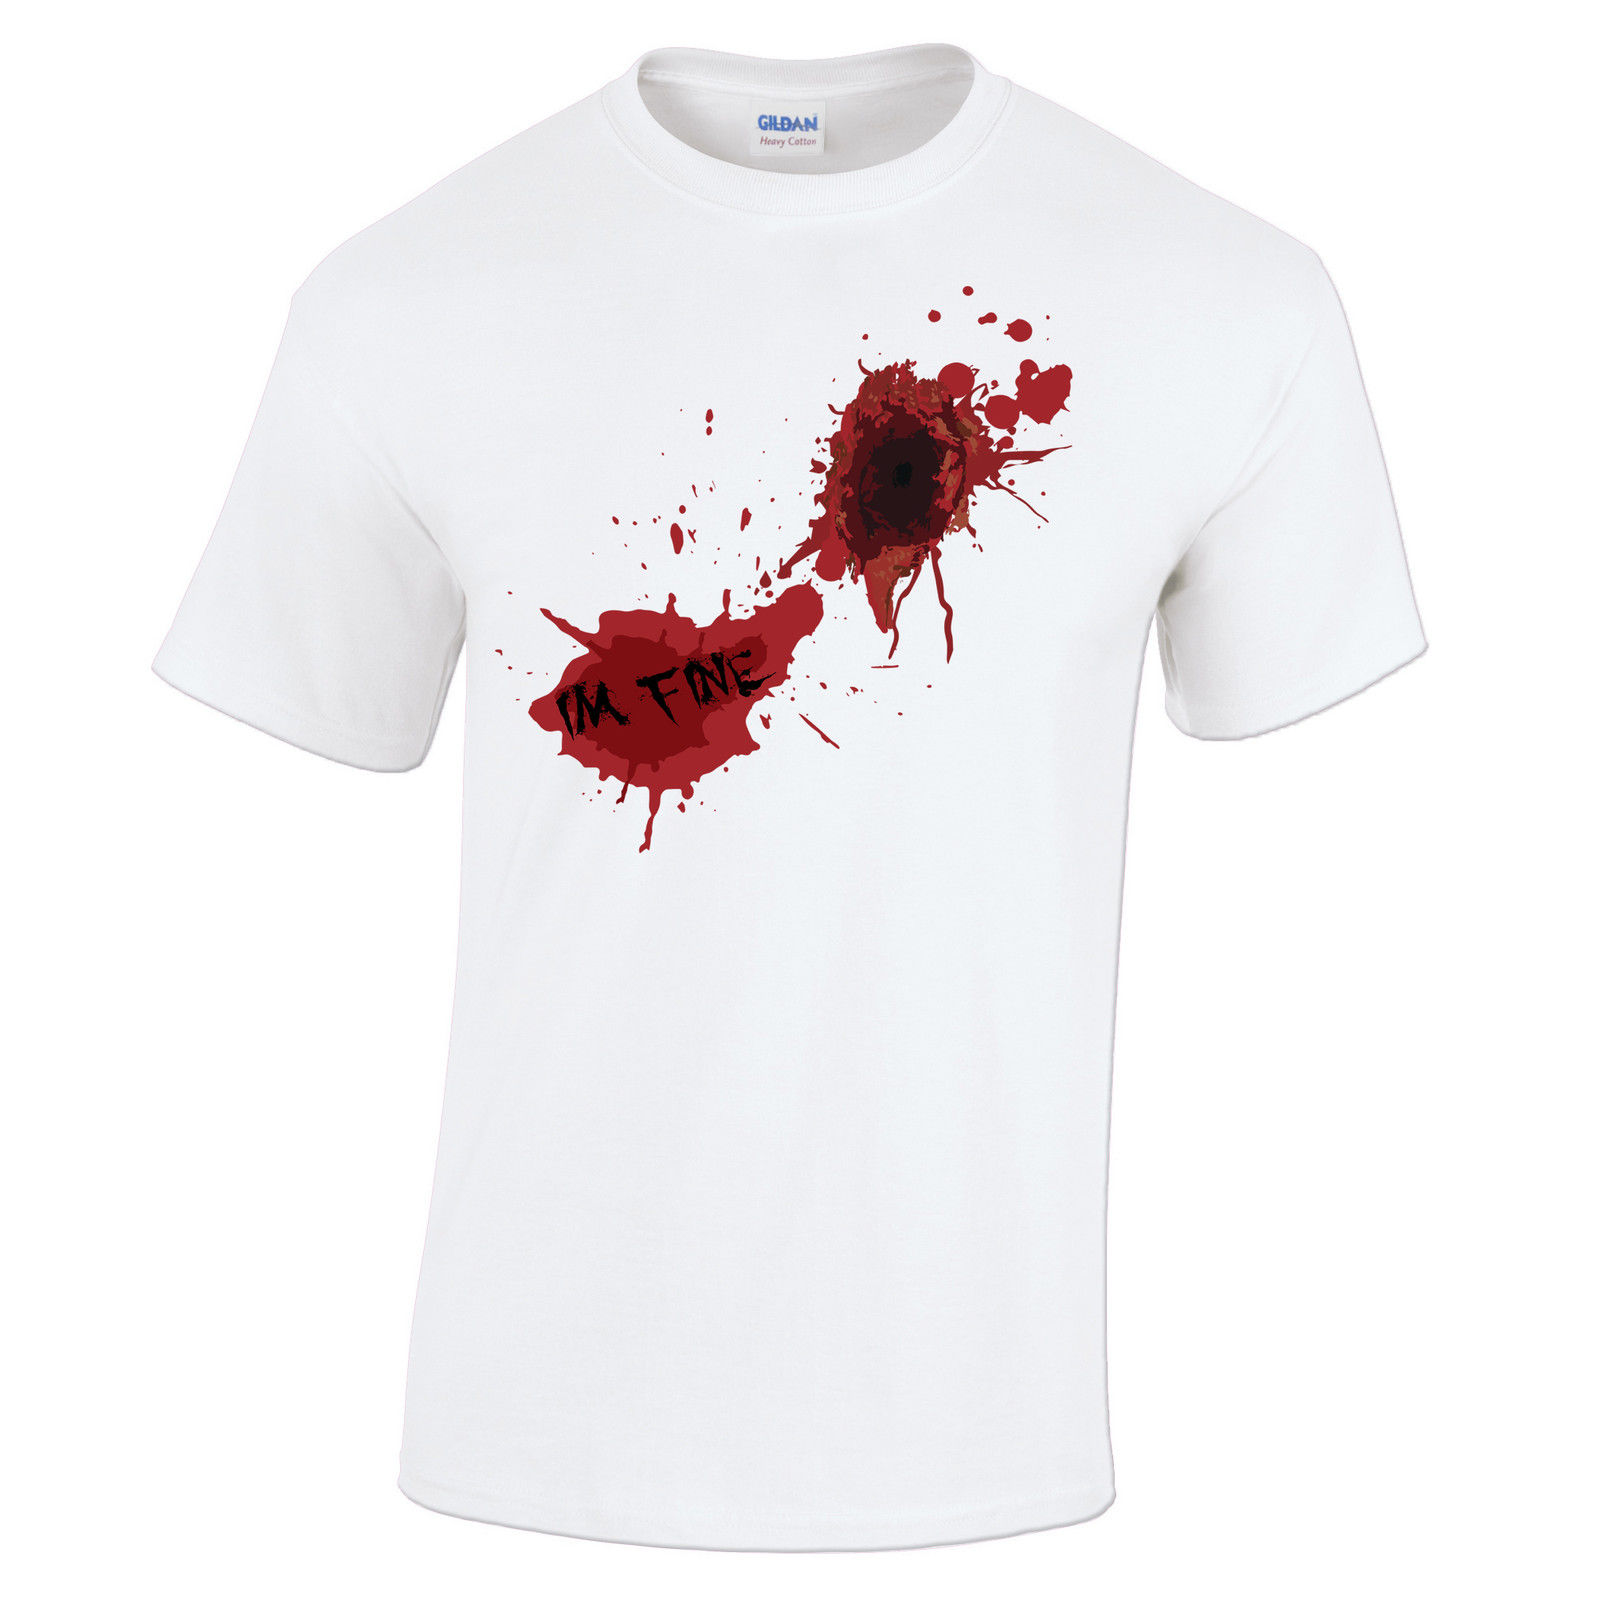 Summer Style Fashion Swag T Shirts Men's Short New Style Crew Neck I'm Fine Zombie Gunshot Wound Blood Splatter Design